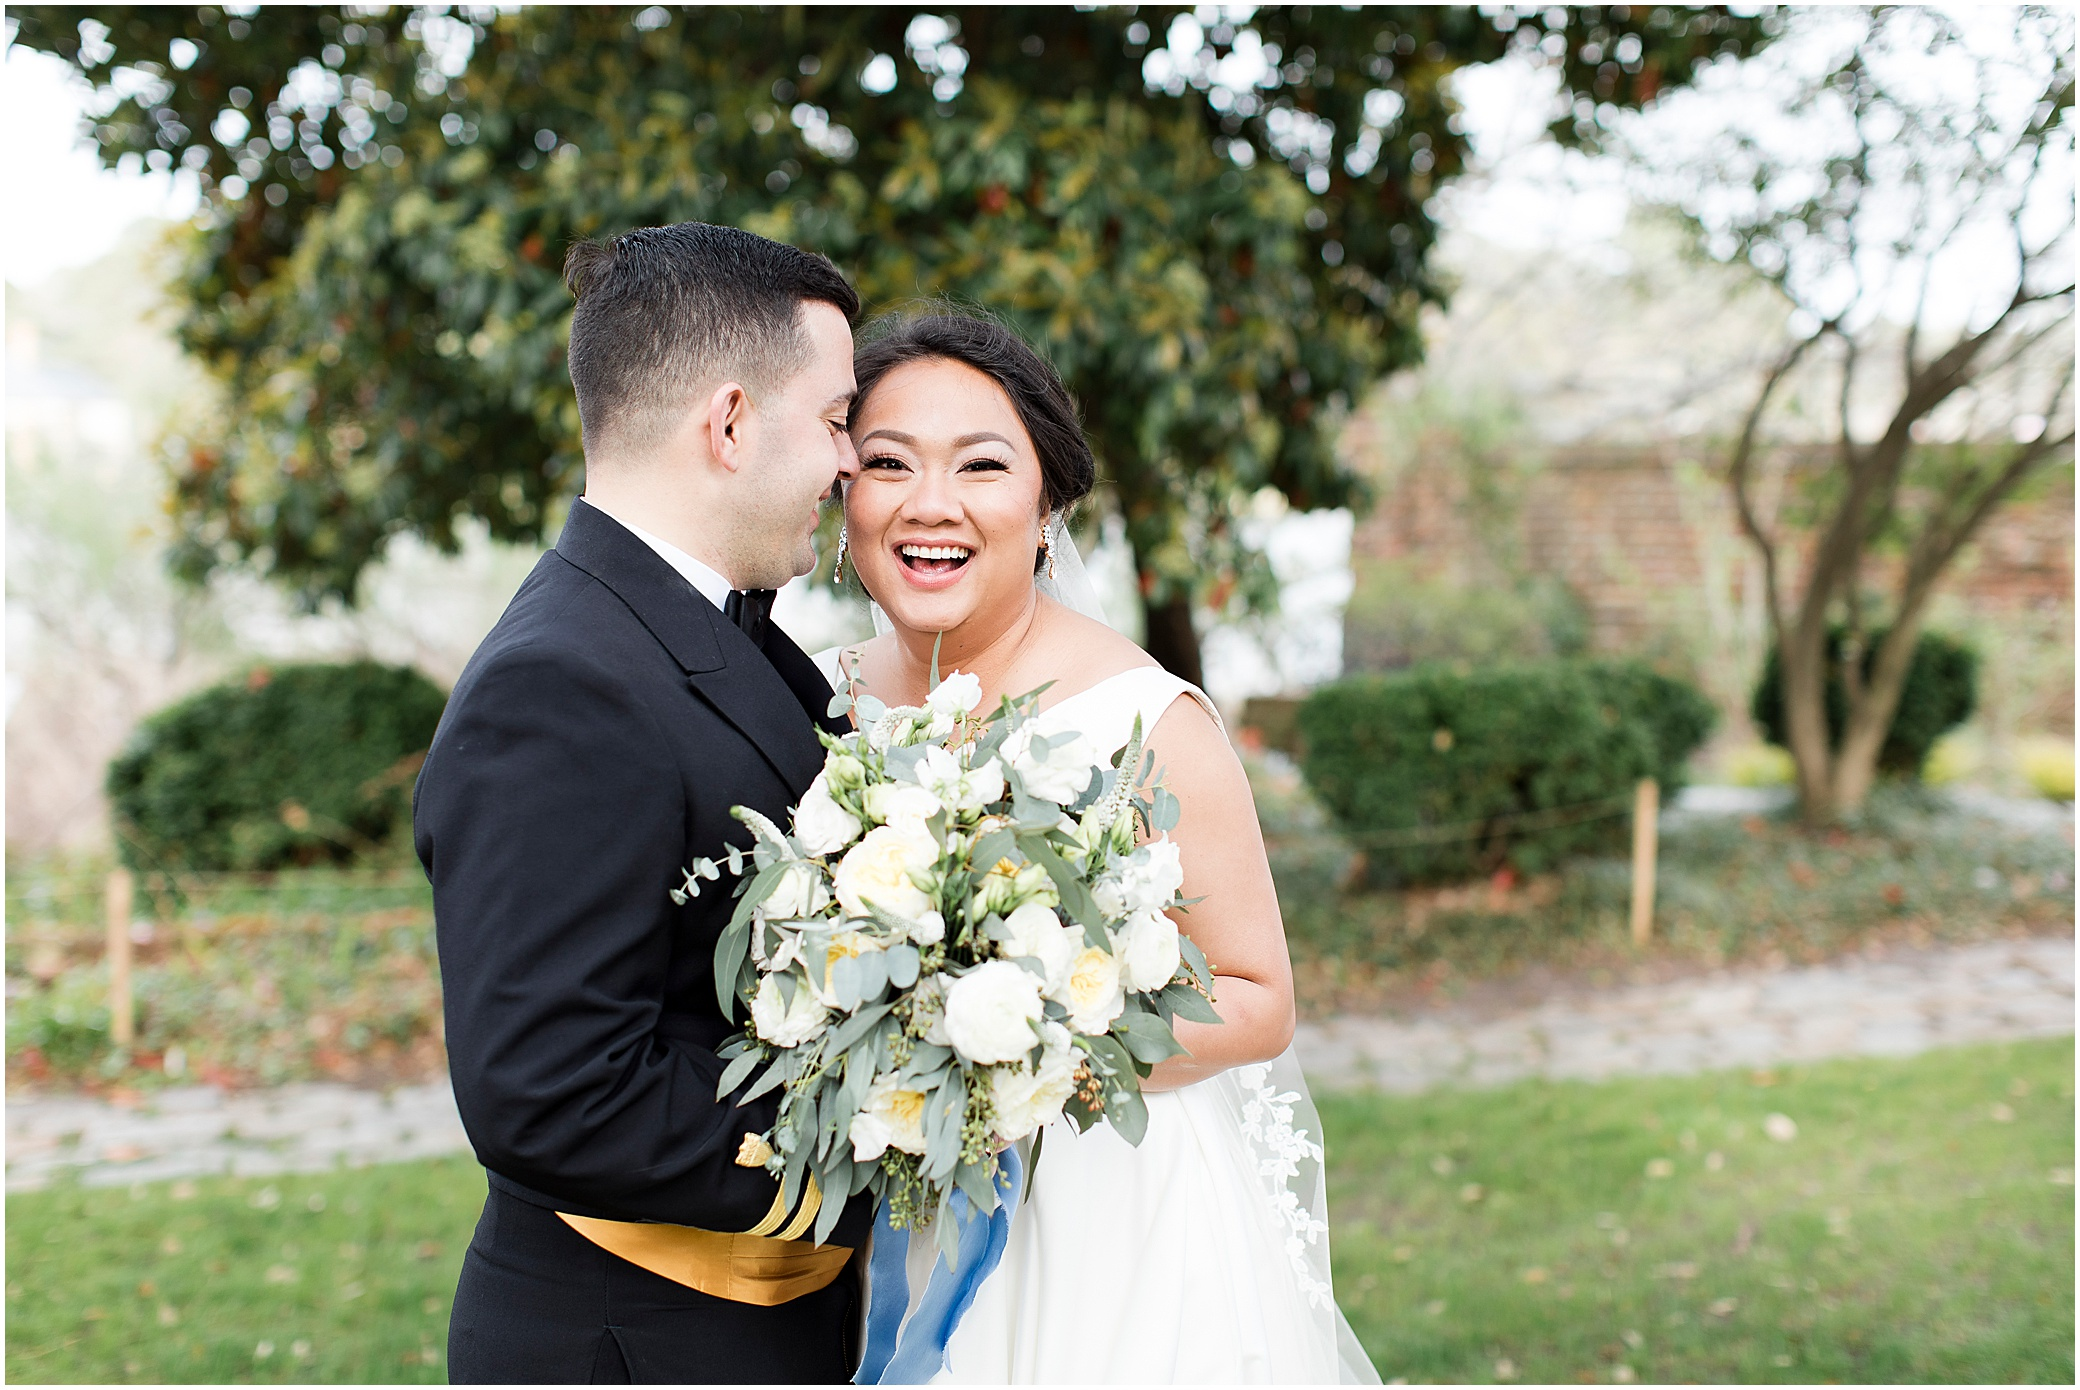 bride and groom candid portrait, spring wedding at the hermitage museum and gardens, Jessica Ryan photography, crafted stems wedding florist, sunkissed events, the makeup school bridal makeup